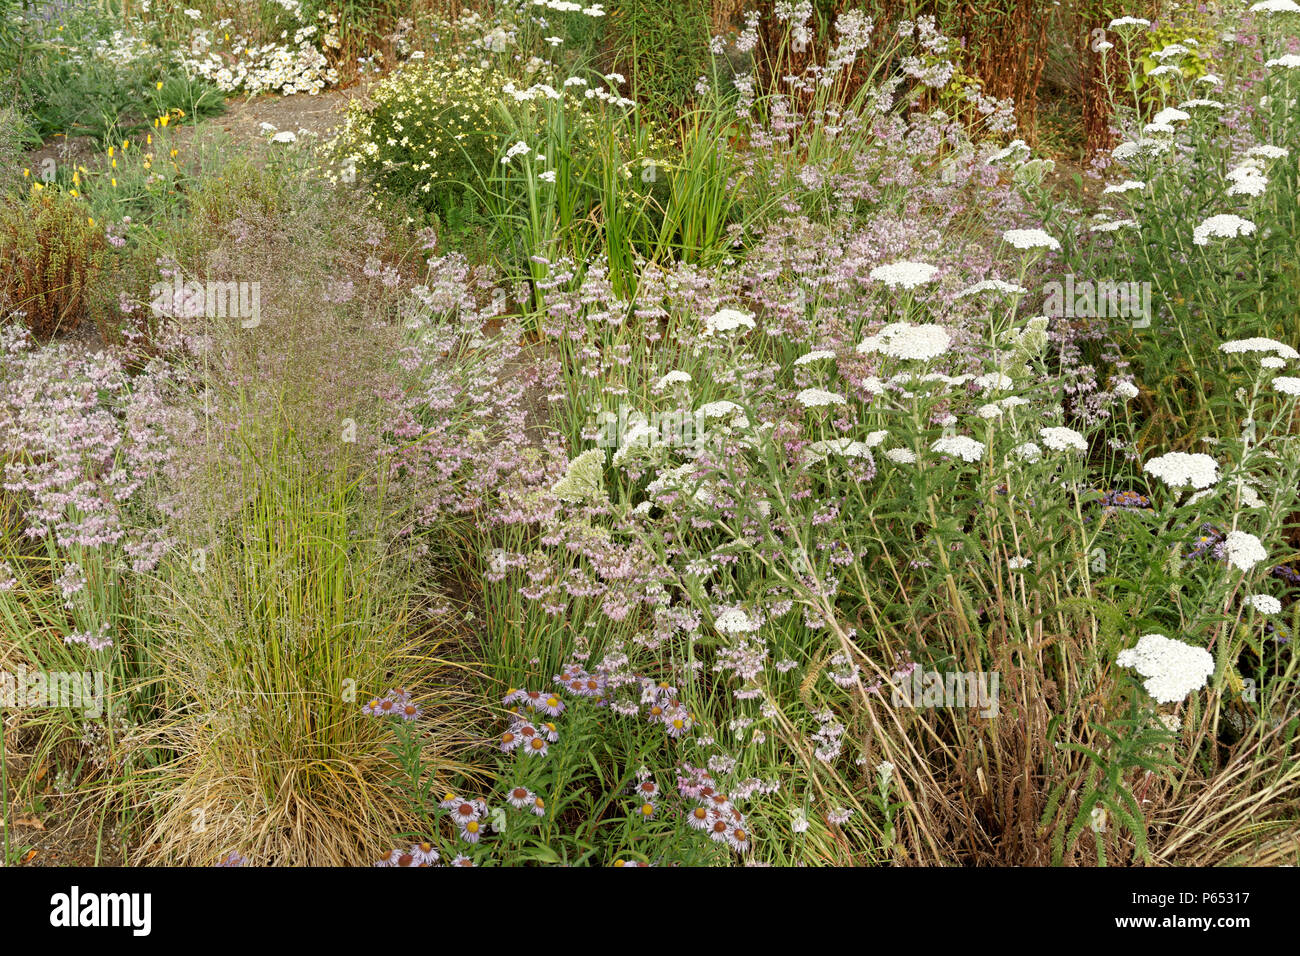 Wildflower meadow in Fifth and Pine pop-up park and pollinator project bee habitat, Vancouver, BC, Canada - Stock Image